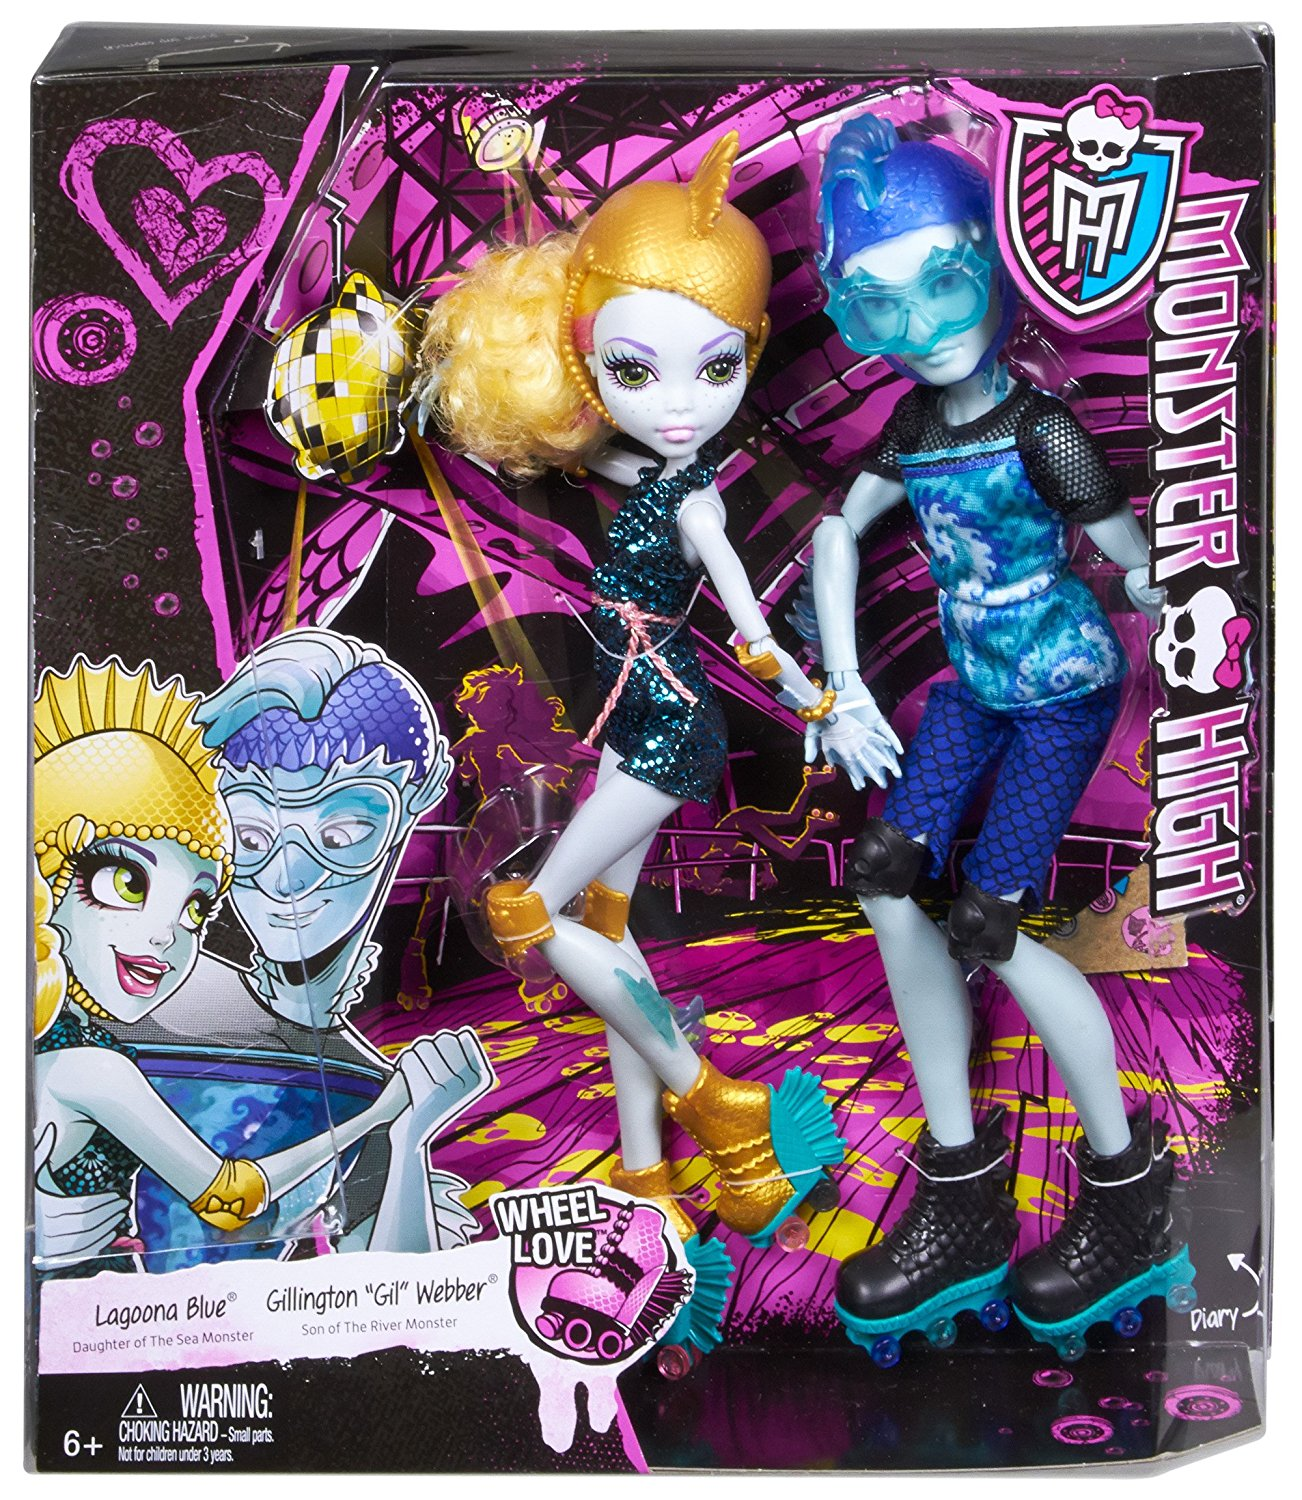 Cặp đôi búp bê Lagoona Blue và Gil Weber trượt patin Monster High Lagoona Blue and Gil Weber Wheel Love, Doll 2-Pack